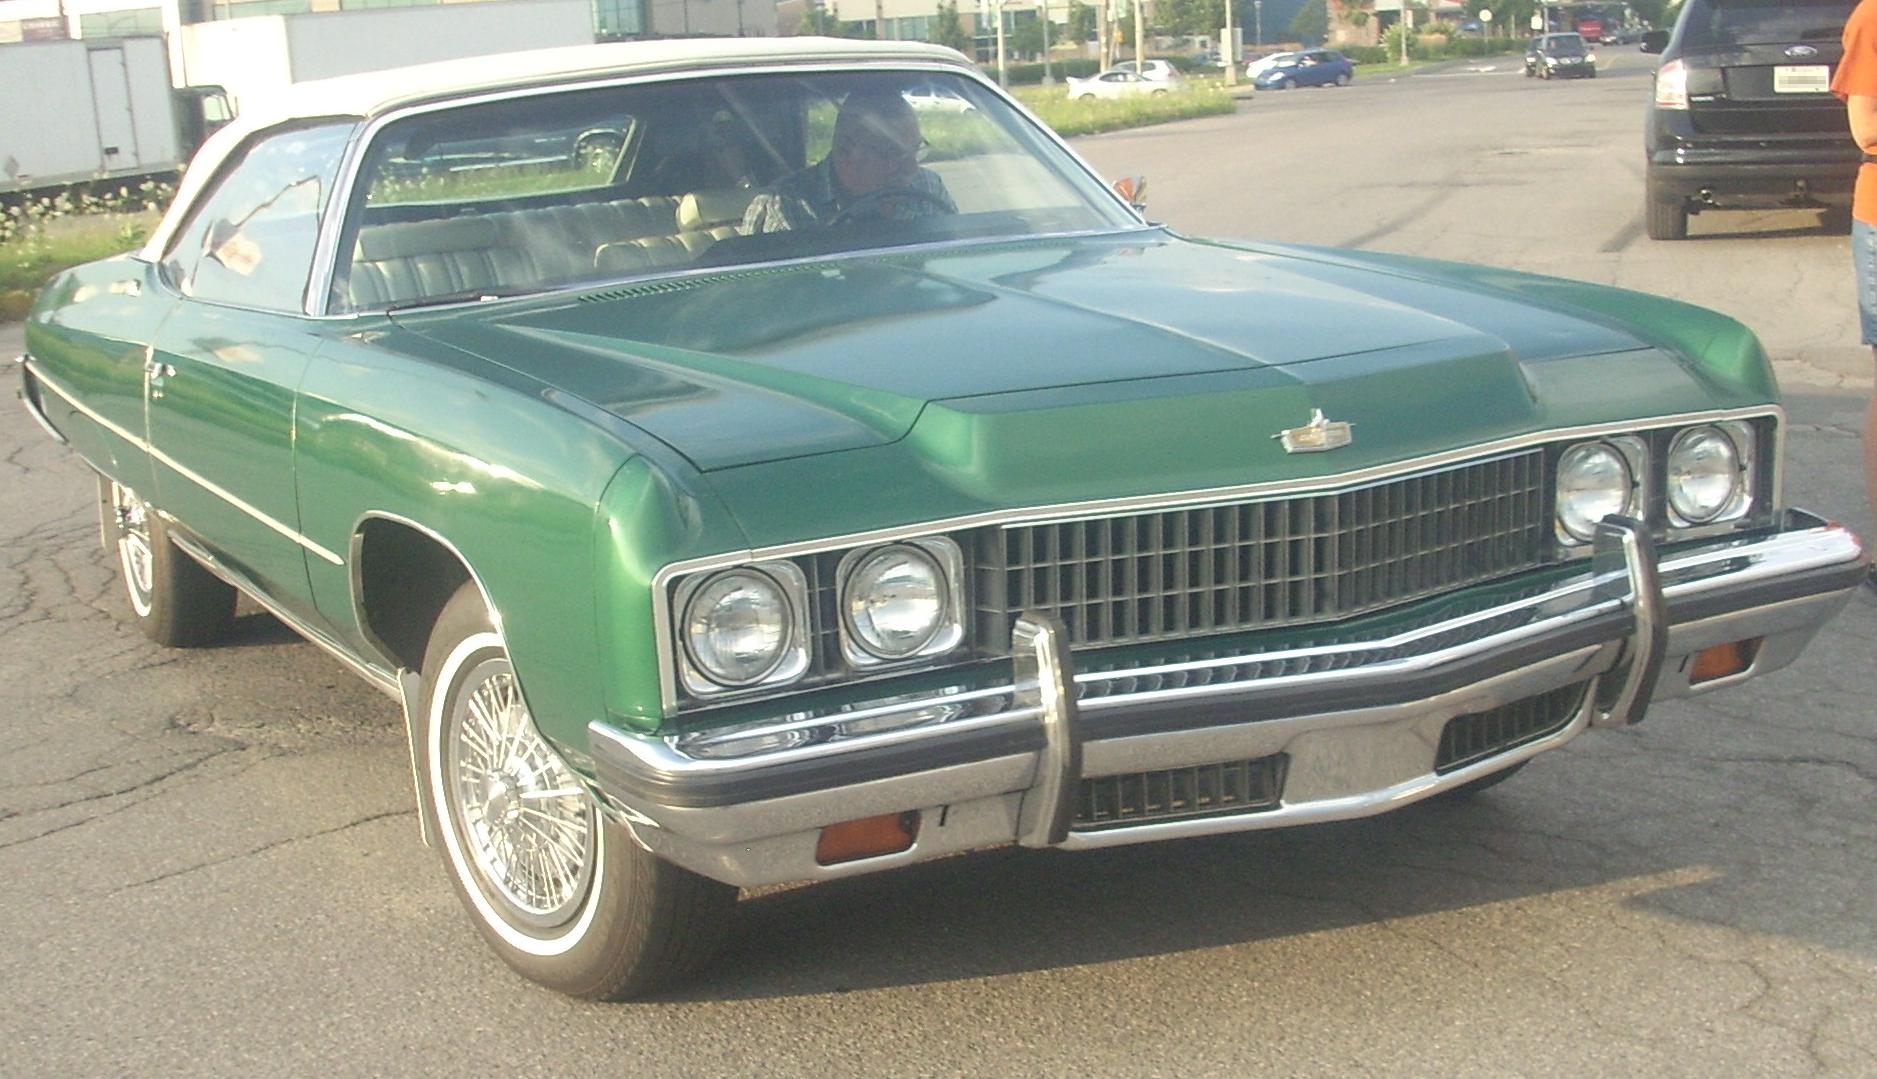 File:1973 Chevrolet Caprice Convertible, front right (Les